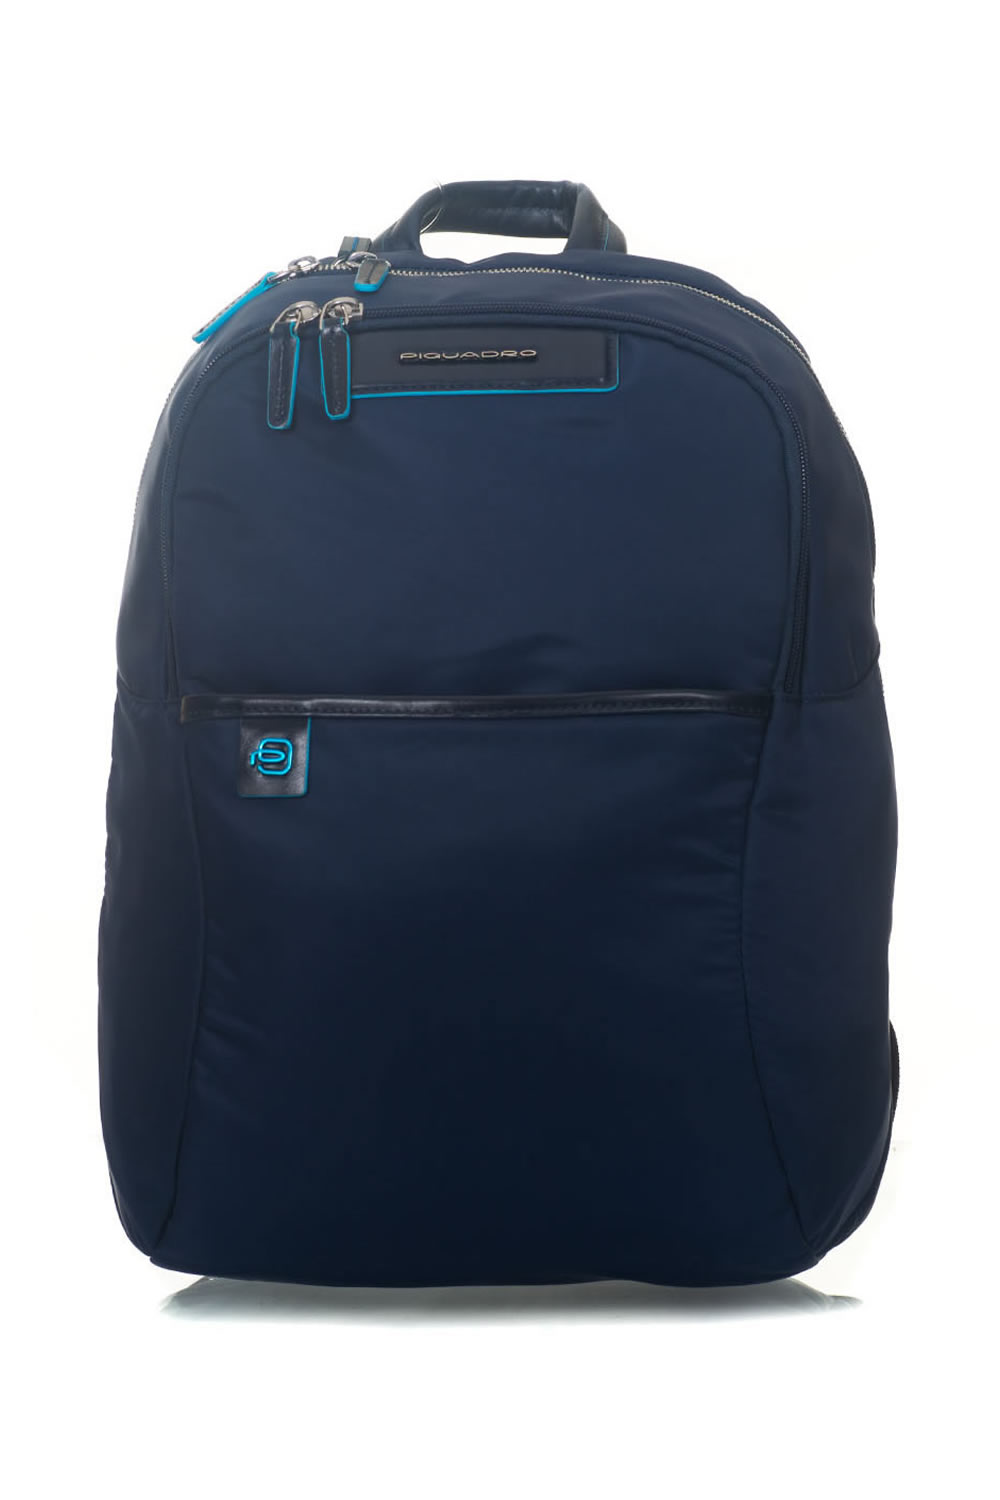 c7ced82890f5 Backpack with notebook and iPad®Pro/iPad - Piquadro - ScaglioneIschia